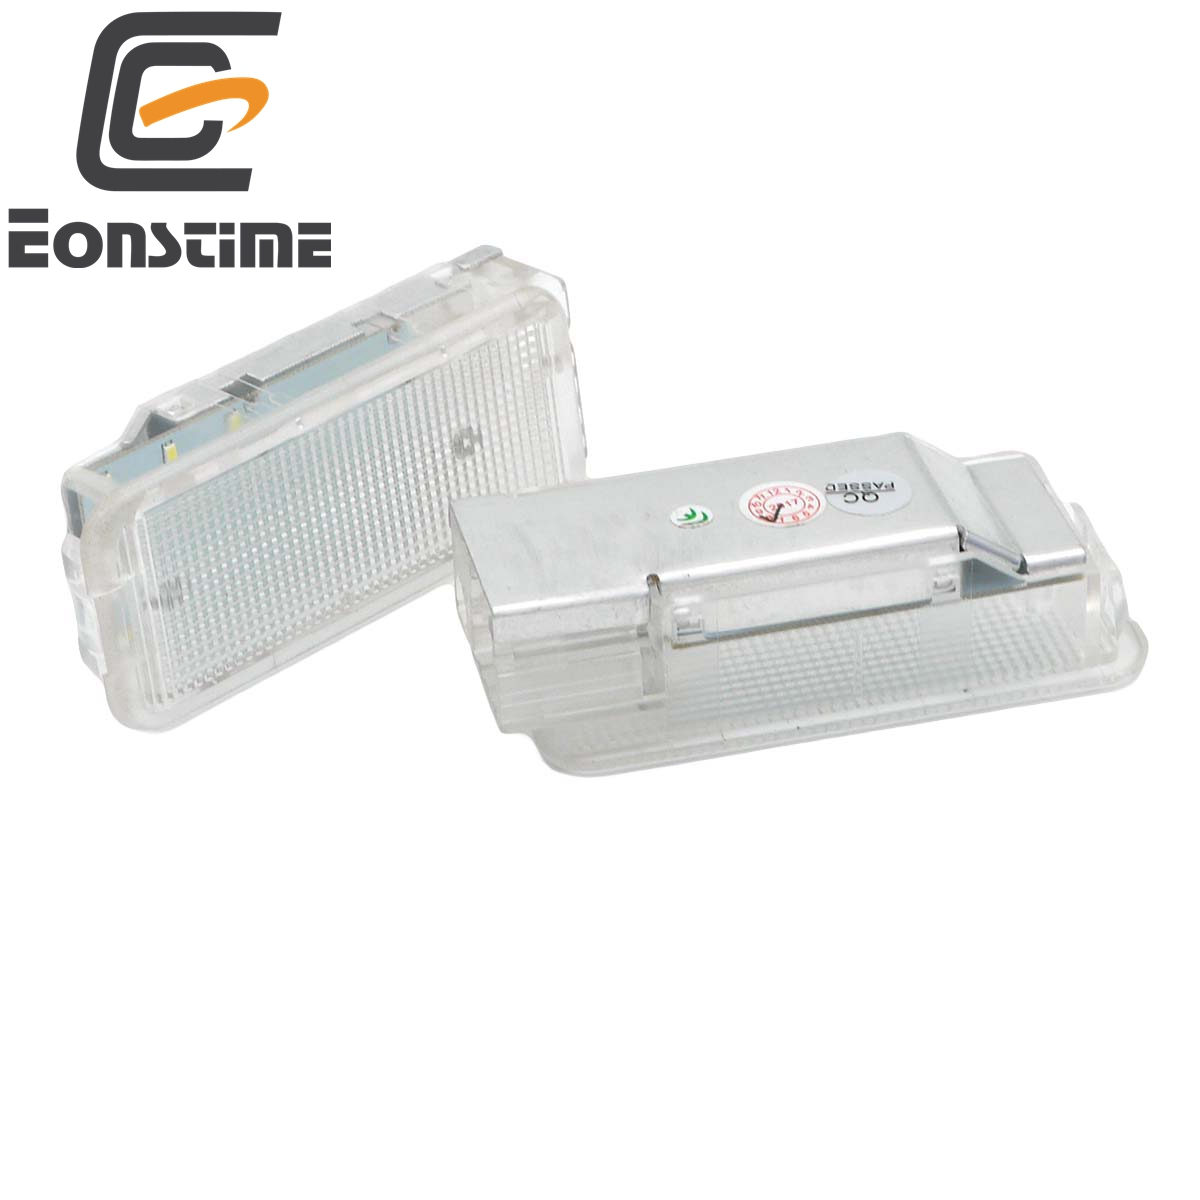 Eonstime 2Pcs 18SMD <font><b>LED</b></font> luggage <font><b>lights</b></font> car compartment Interior <font><b>light</b></font> Lamp For <font><b>Peugeot</b></font> 1007 206 207 306 <font><b>307</b></font> 3008 406 407 5008 image